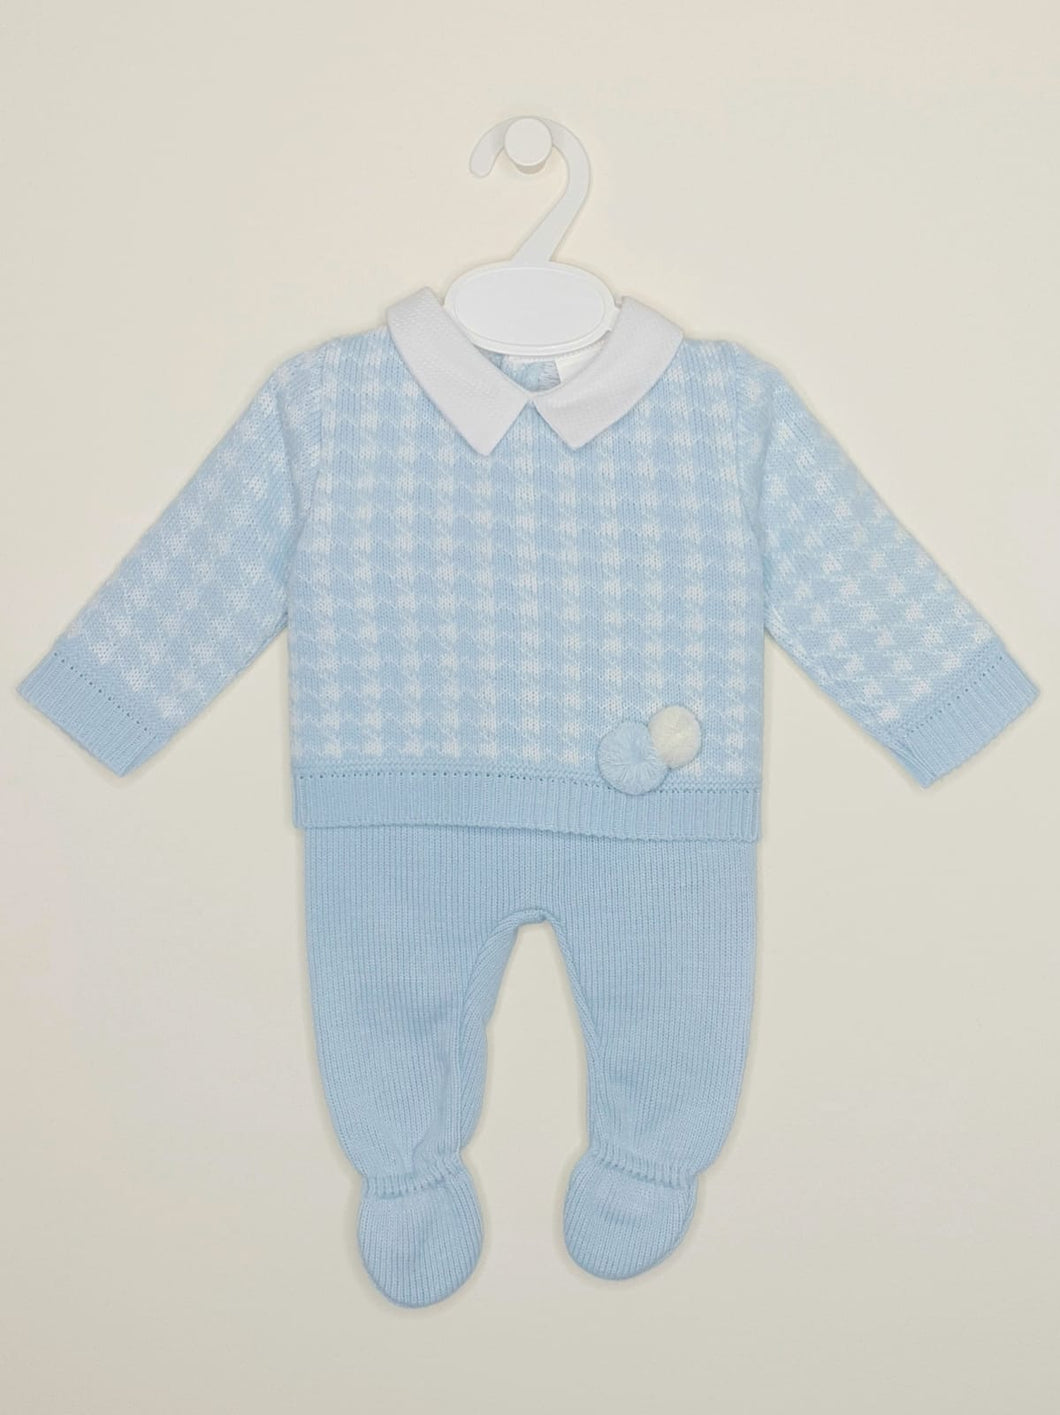 Spanish Baby Boys Blue Knitted Outfit With Pompoms